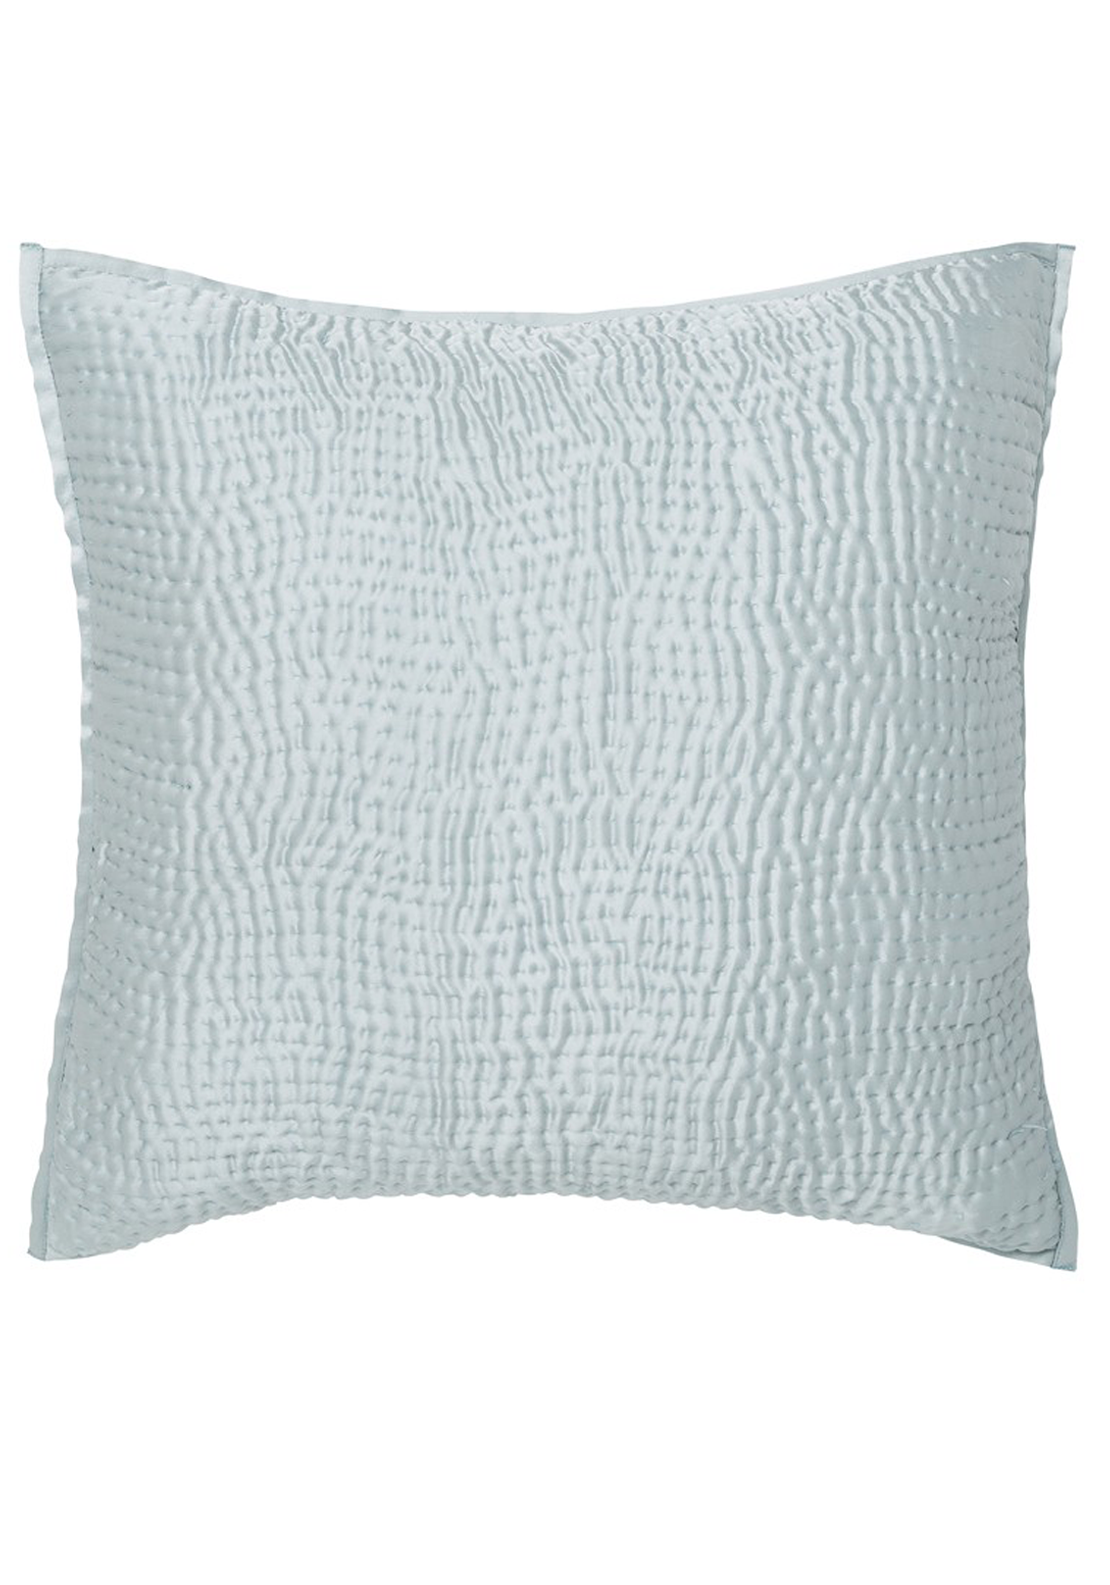 Fable Riviera Cushion, 40 x 40cm Duckegg